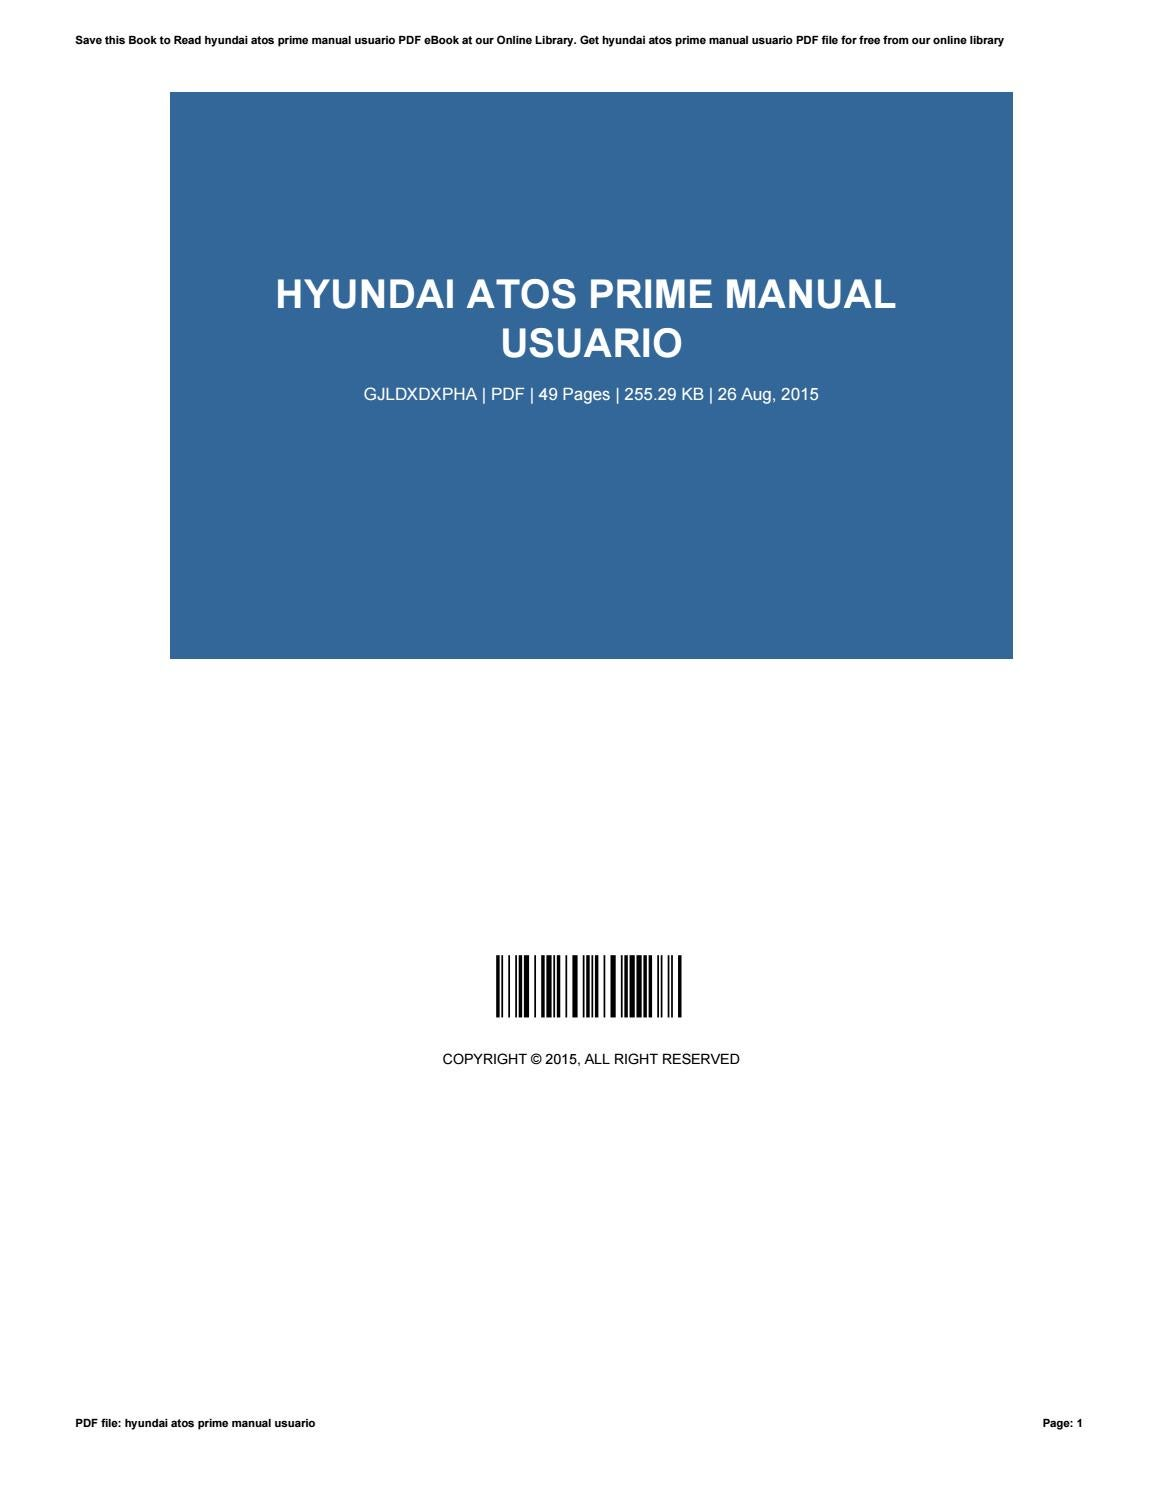 hyundai atos repair manual hyundai h1 owners manual Array - hyundai atos  prime manual usuario by kathleenbunch4293 issuu rh issuu ...